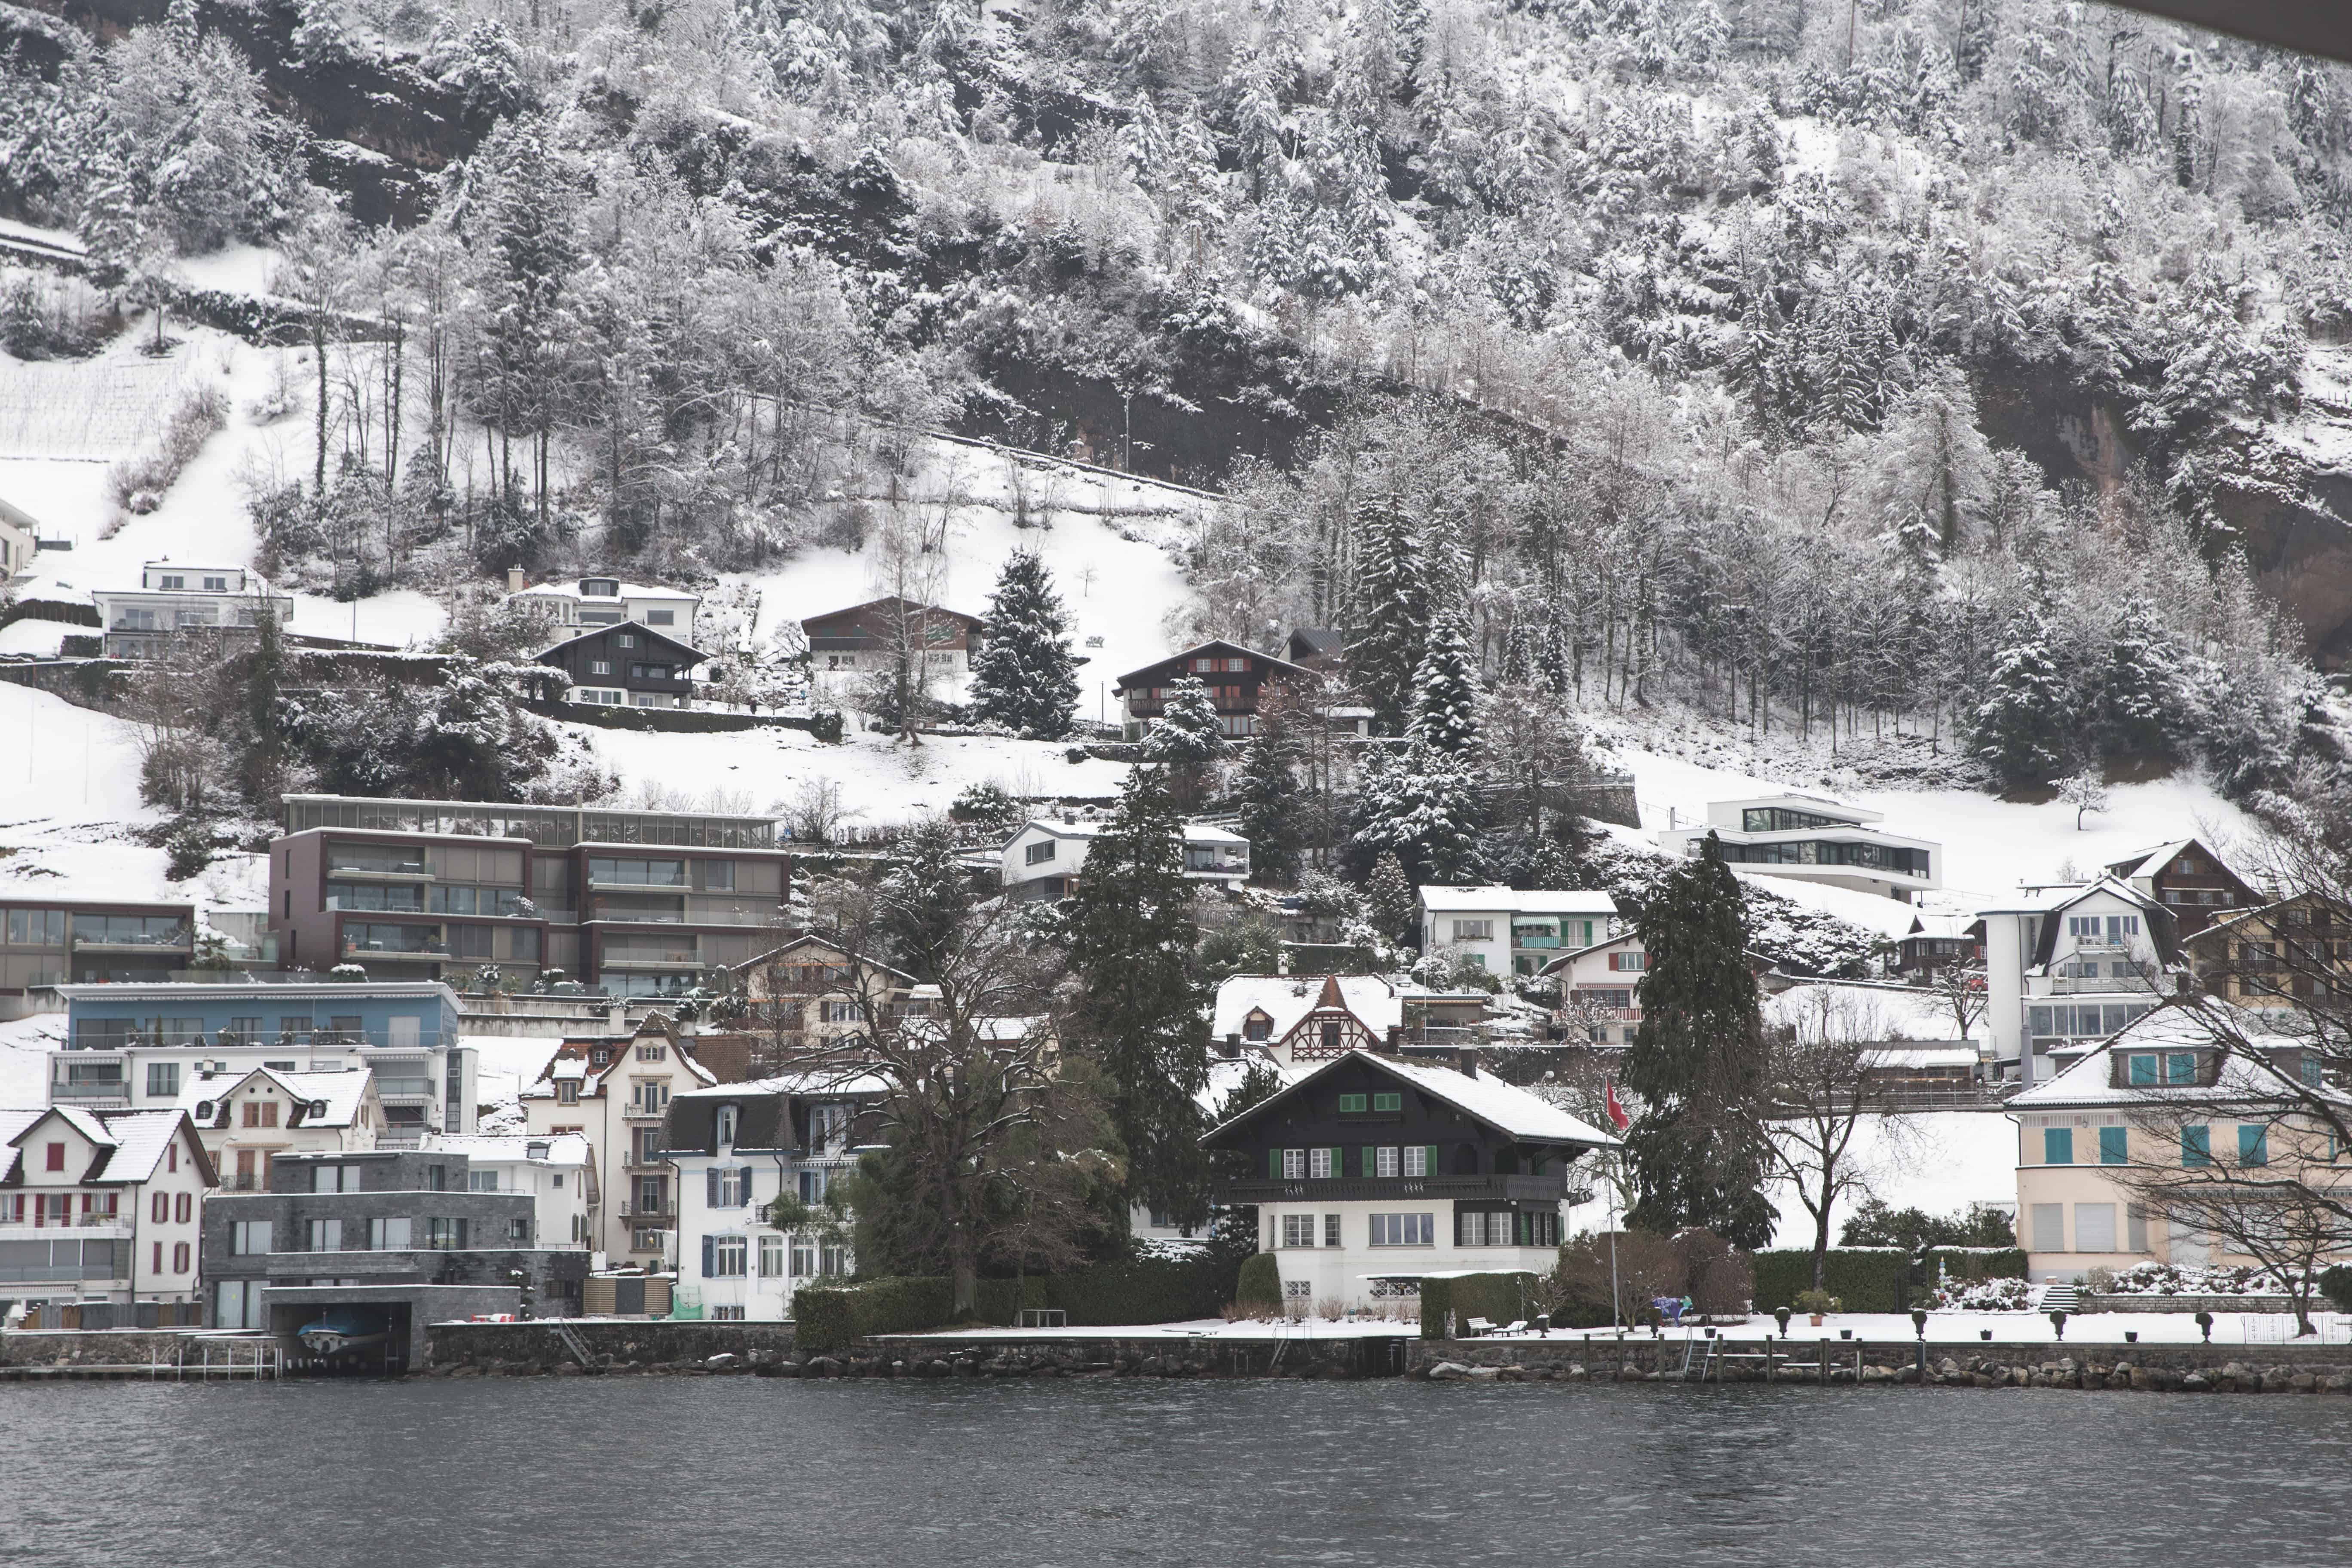 Lake houses in February are covered in snow on Lake Lucerne in Switzerland